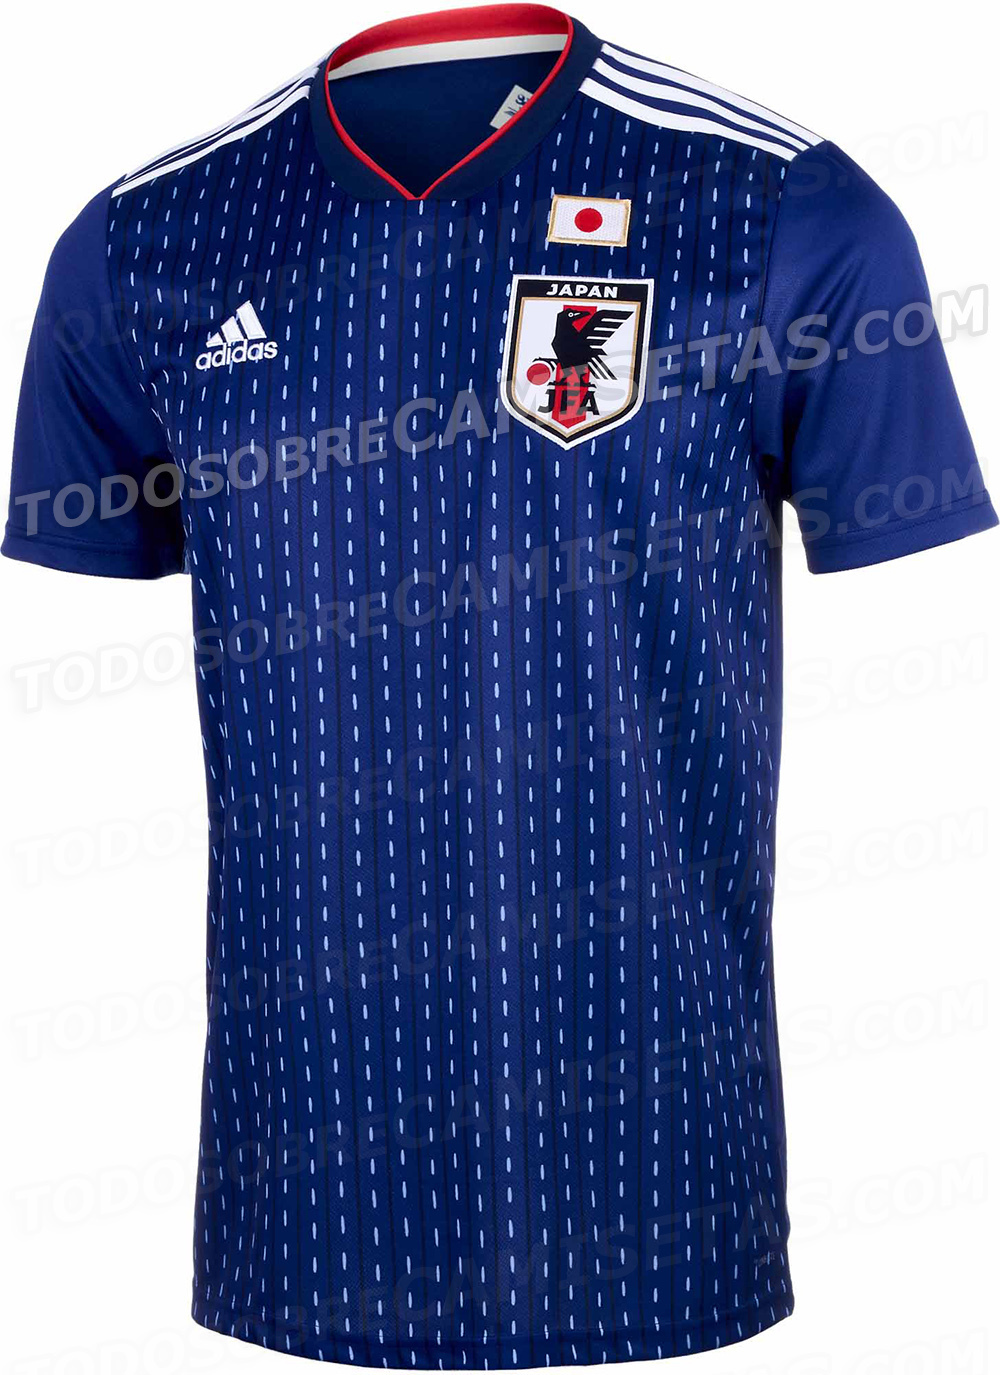 japan-2018-world-cup-kit-lk-1.jpg